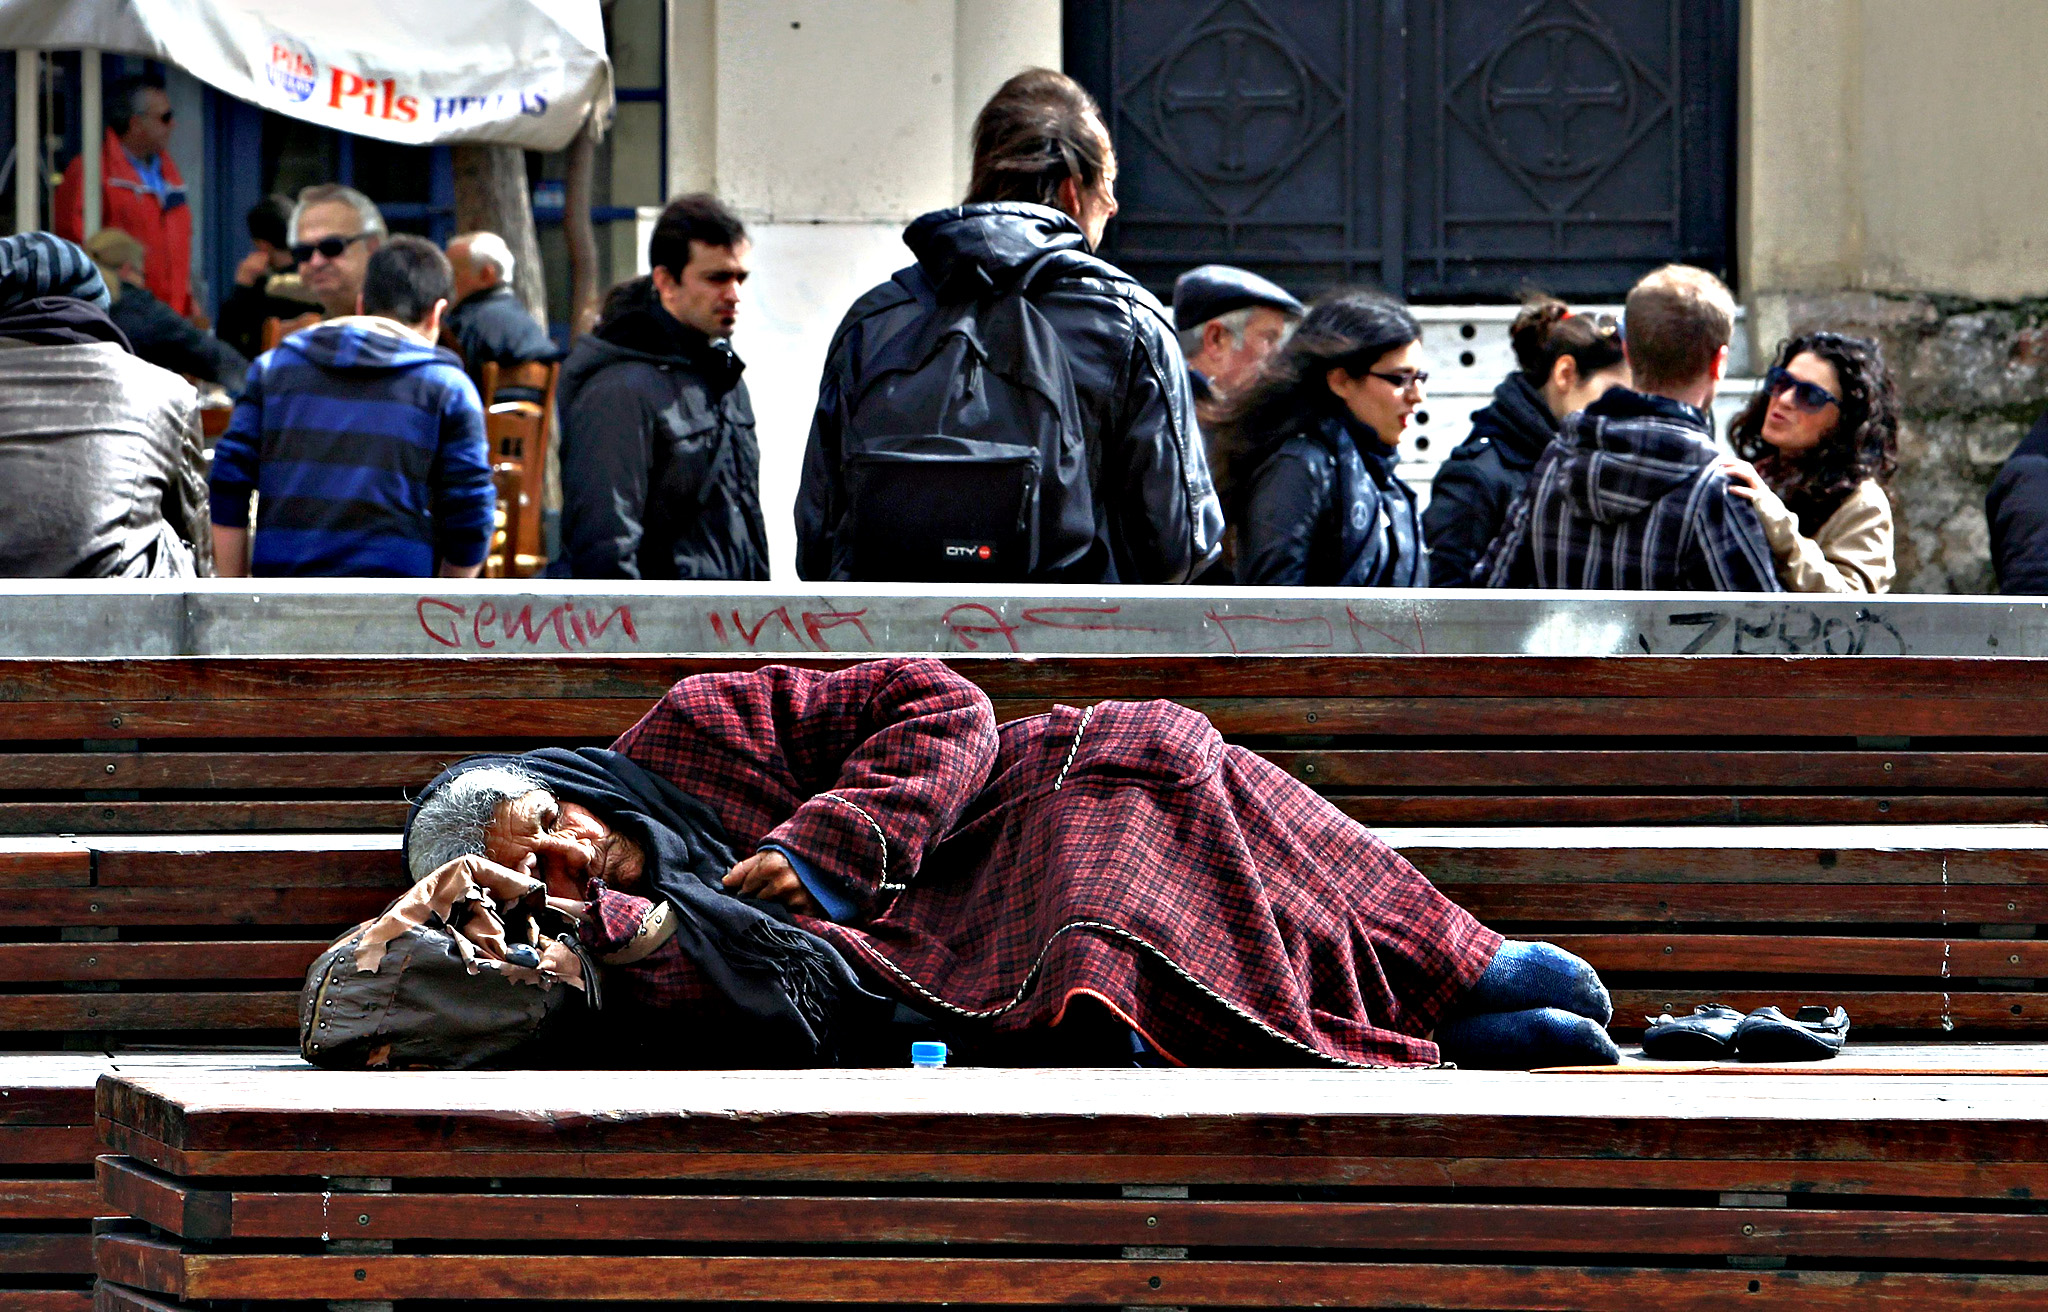 An elderly homeless woman sleeps on a bench in the touristic area of Monastiraki in central Athens, Greece, 06 March 2015. The eurozone economy showed signs of recovery in the last three months of 2014, with growth of 0.3 per cent compared to the previous quarter, the European Union's statistics office Eurostat said 06 March confirming preliminary estimates. Bailout recipients Cyprus and Greece saw their economies shrink by 0.7 per cent and 0.4 per cent respectively.